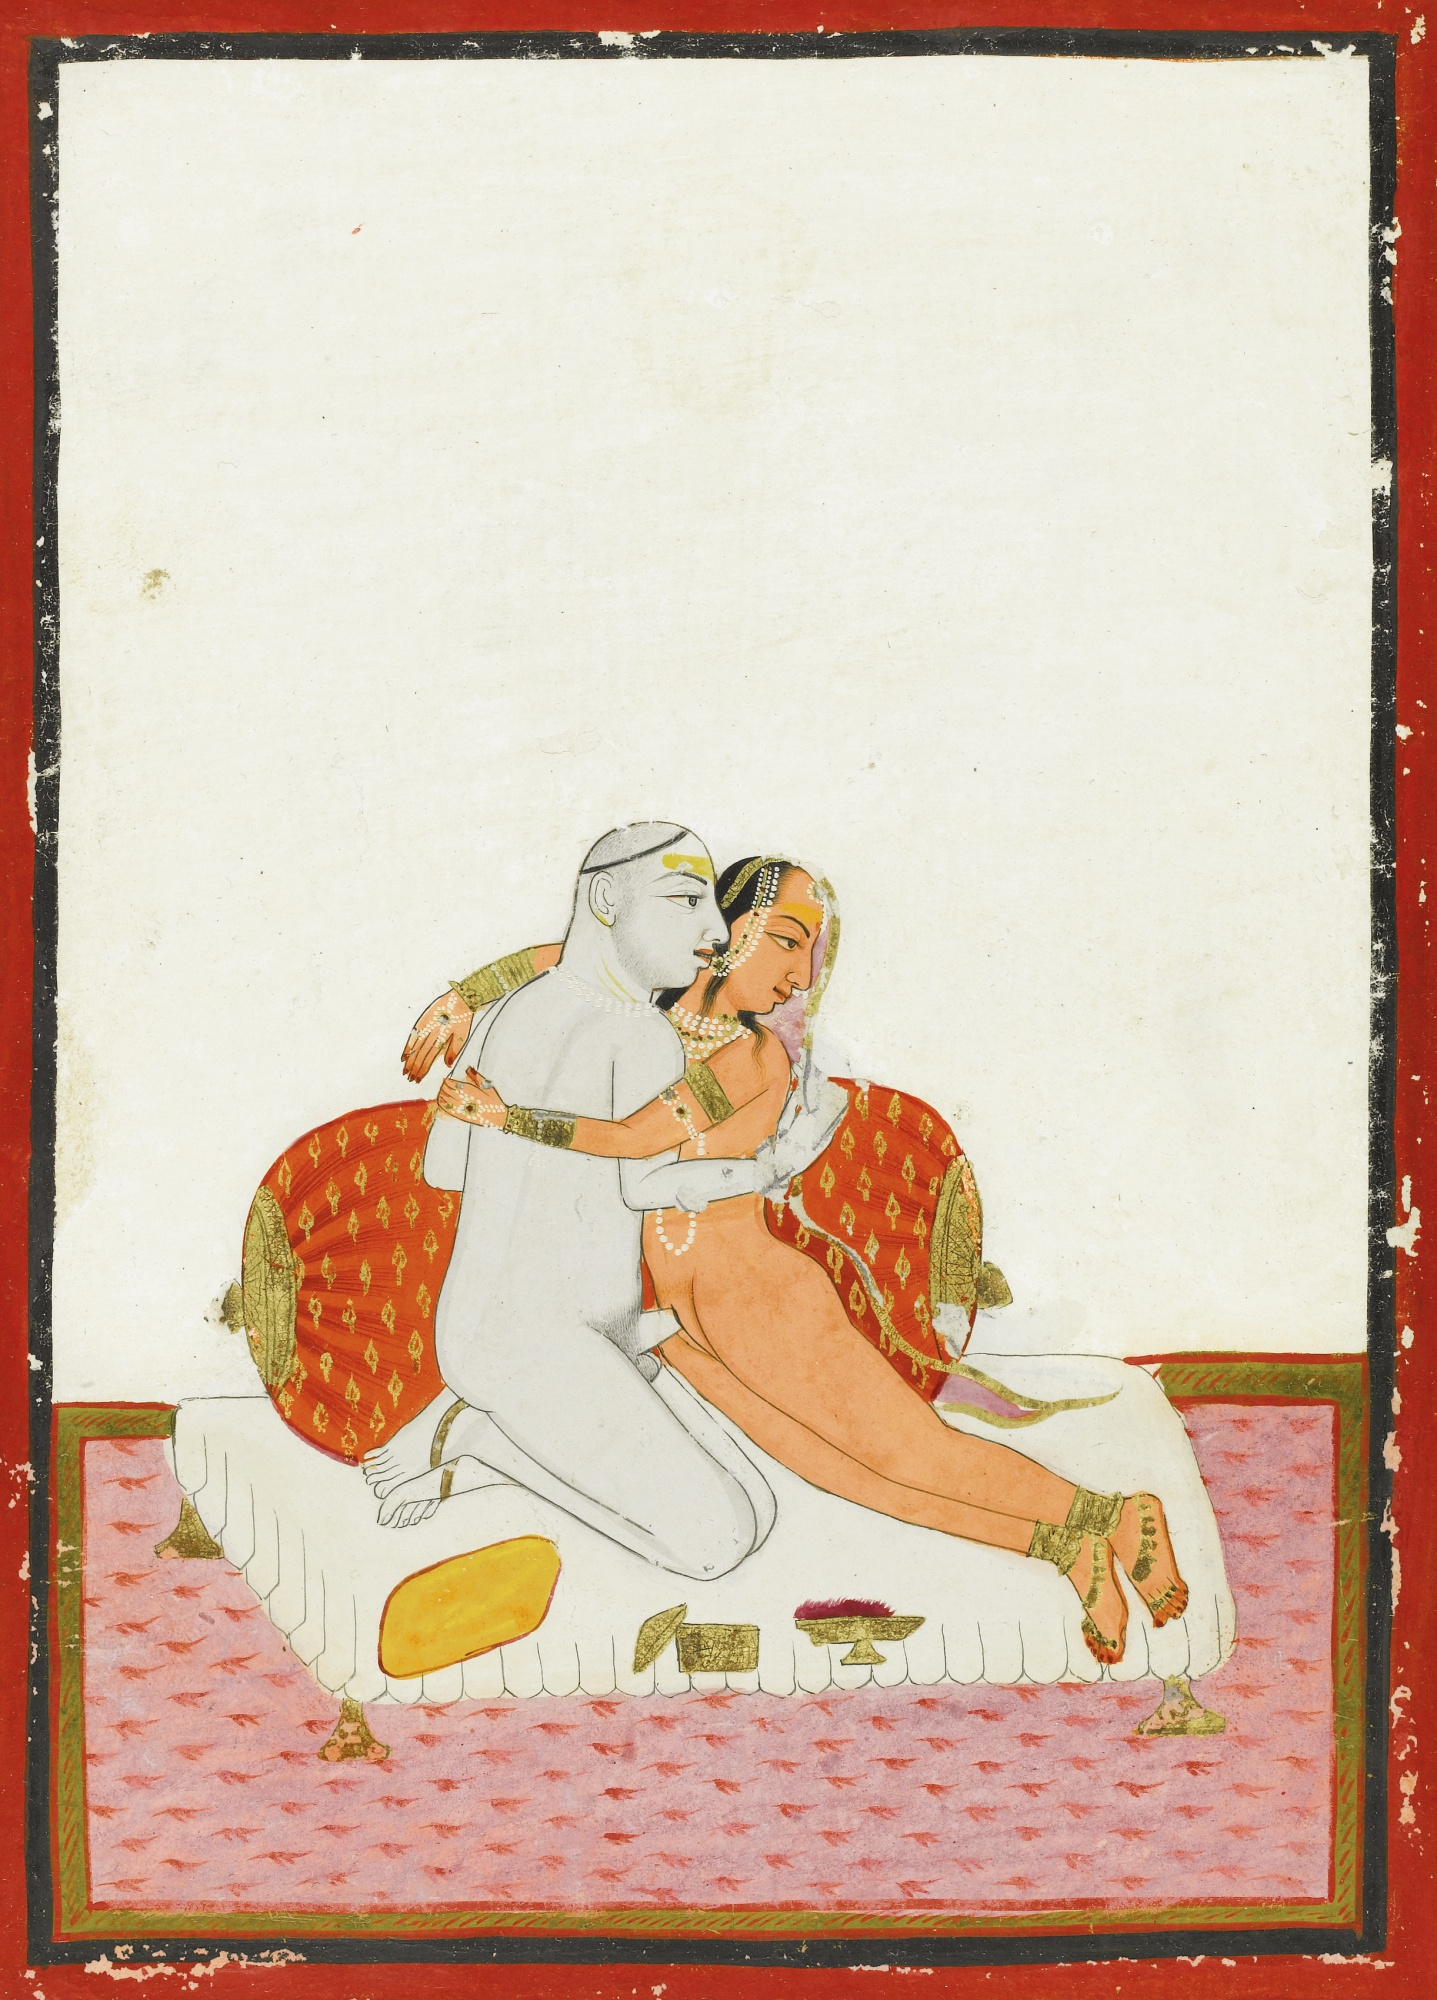 An Ascetic with his Lover on a bed Engaged in Lovemaking - Rajput Miniature Painting, Mewar, Udaipur, circa 1740-50